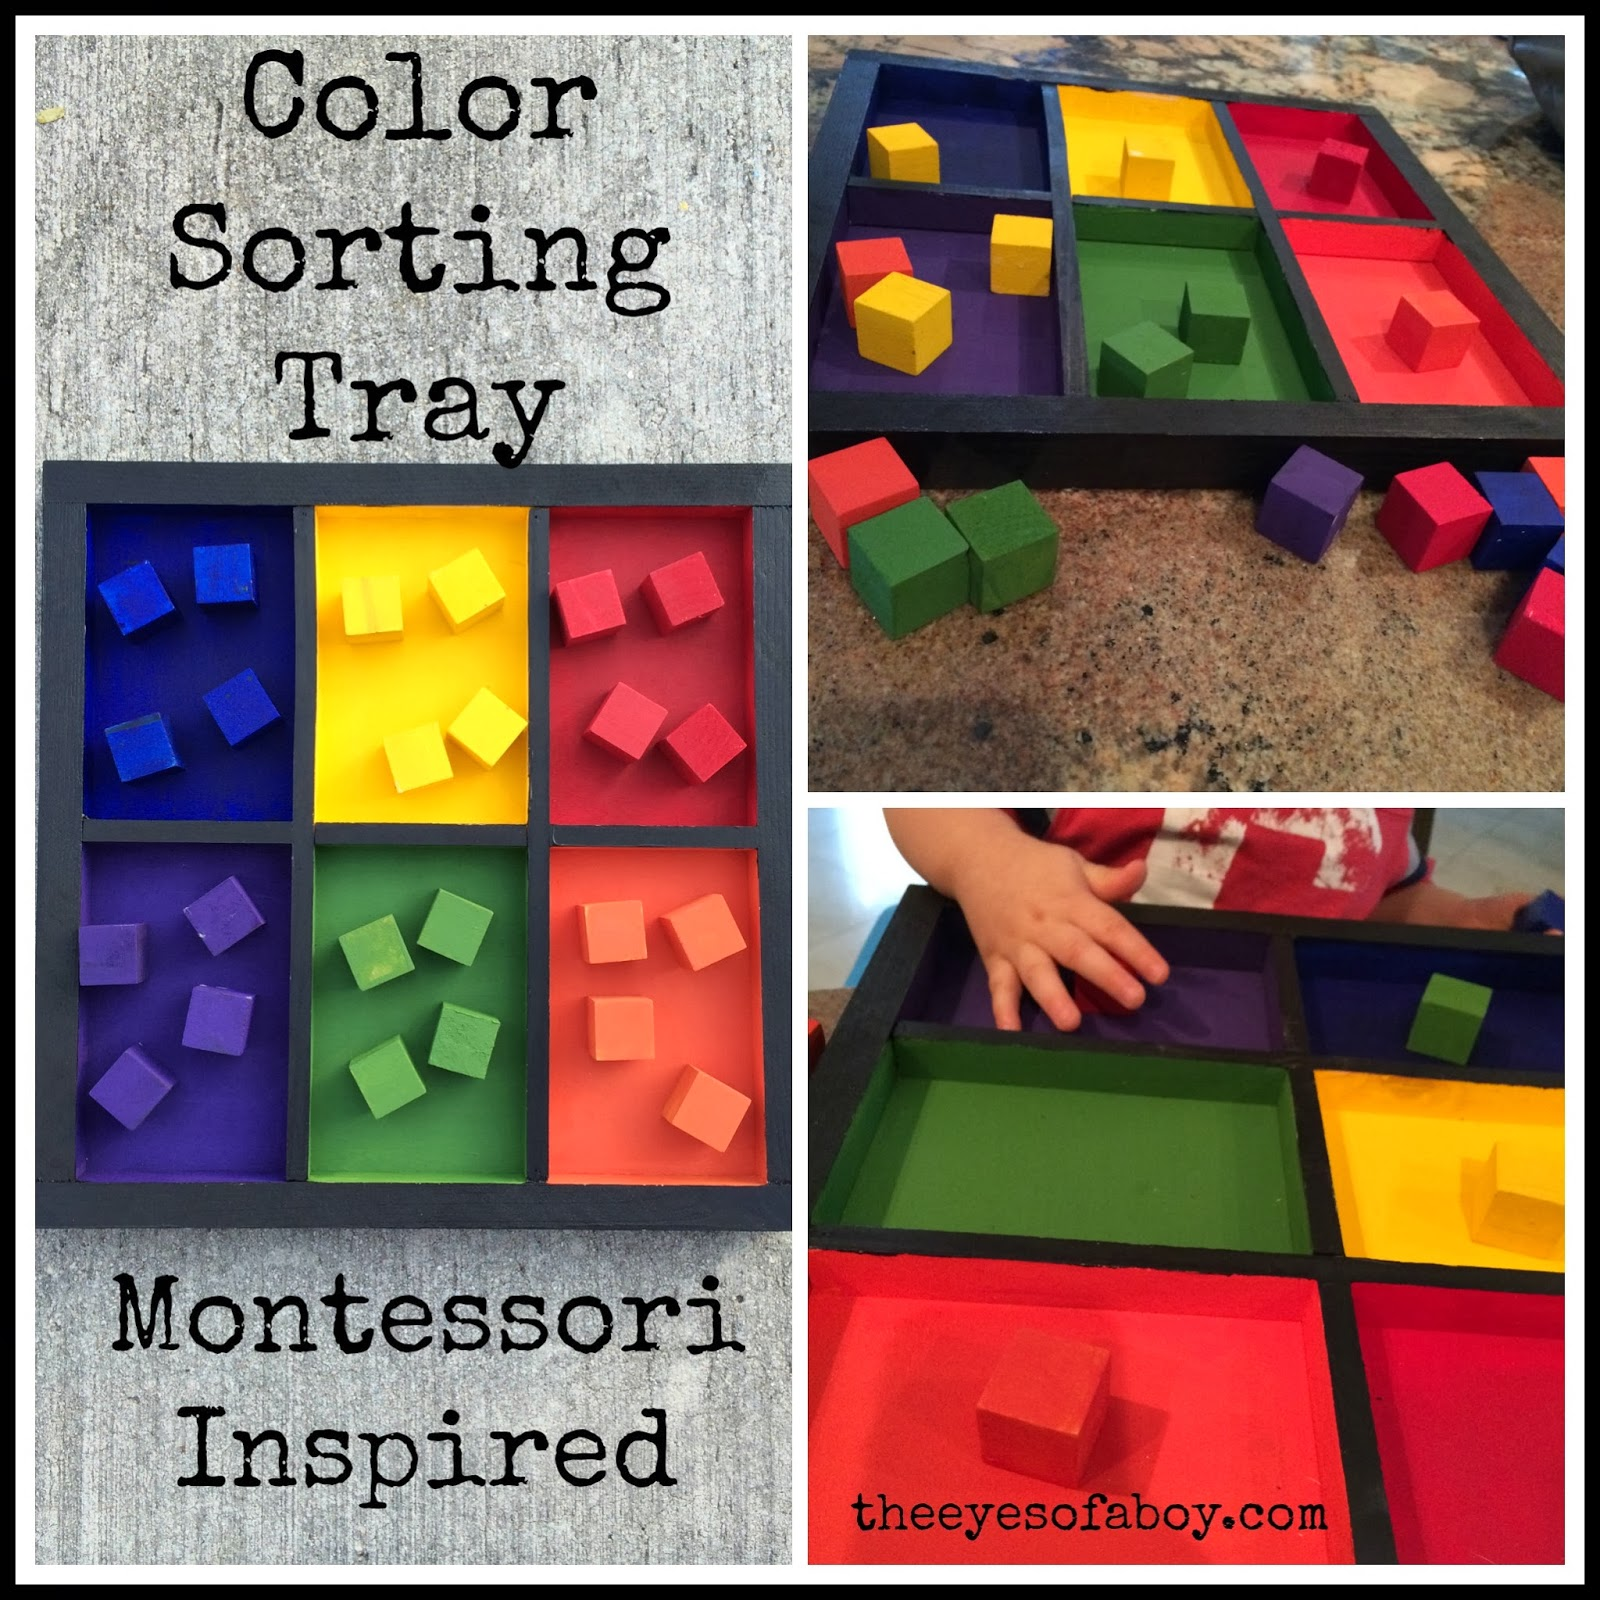 Color games for toddlers - Colour Learning Activities For Toddlers Wooden Color Sorting Tray Diy Learning Activity For Toddlers